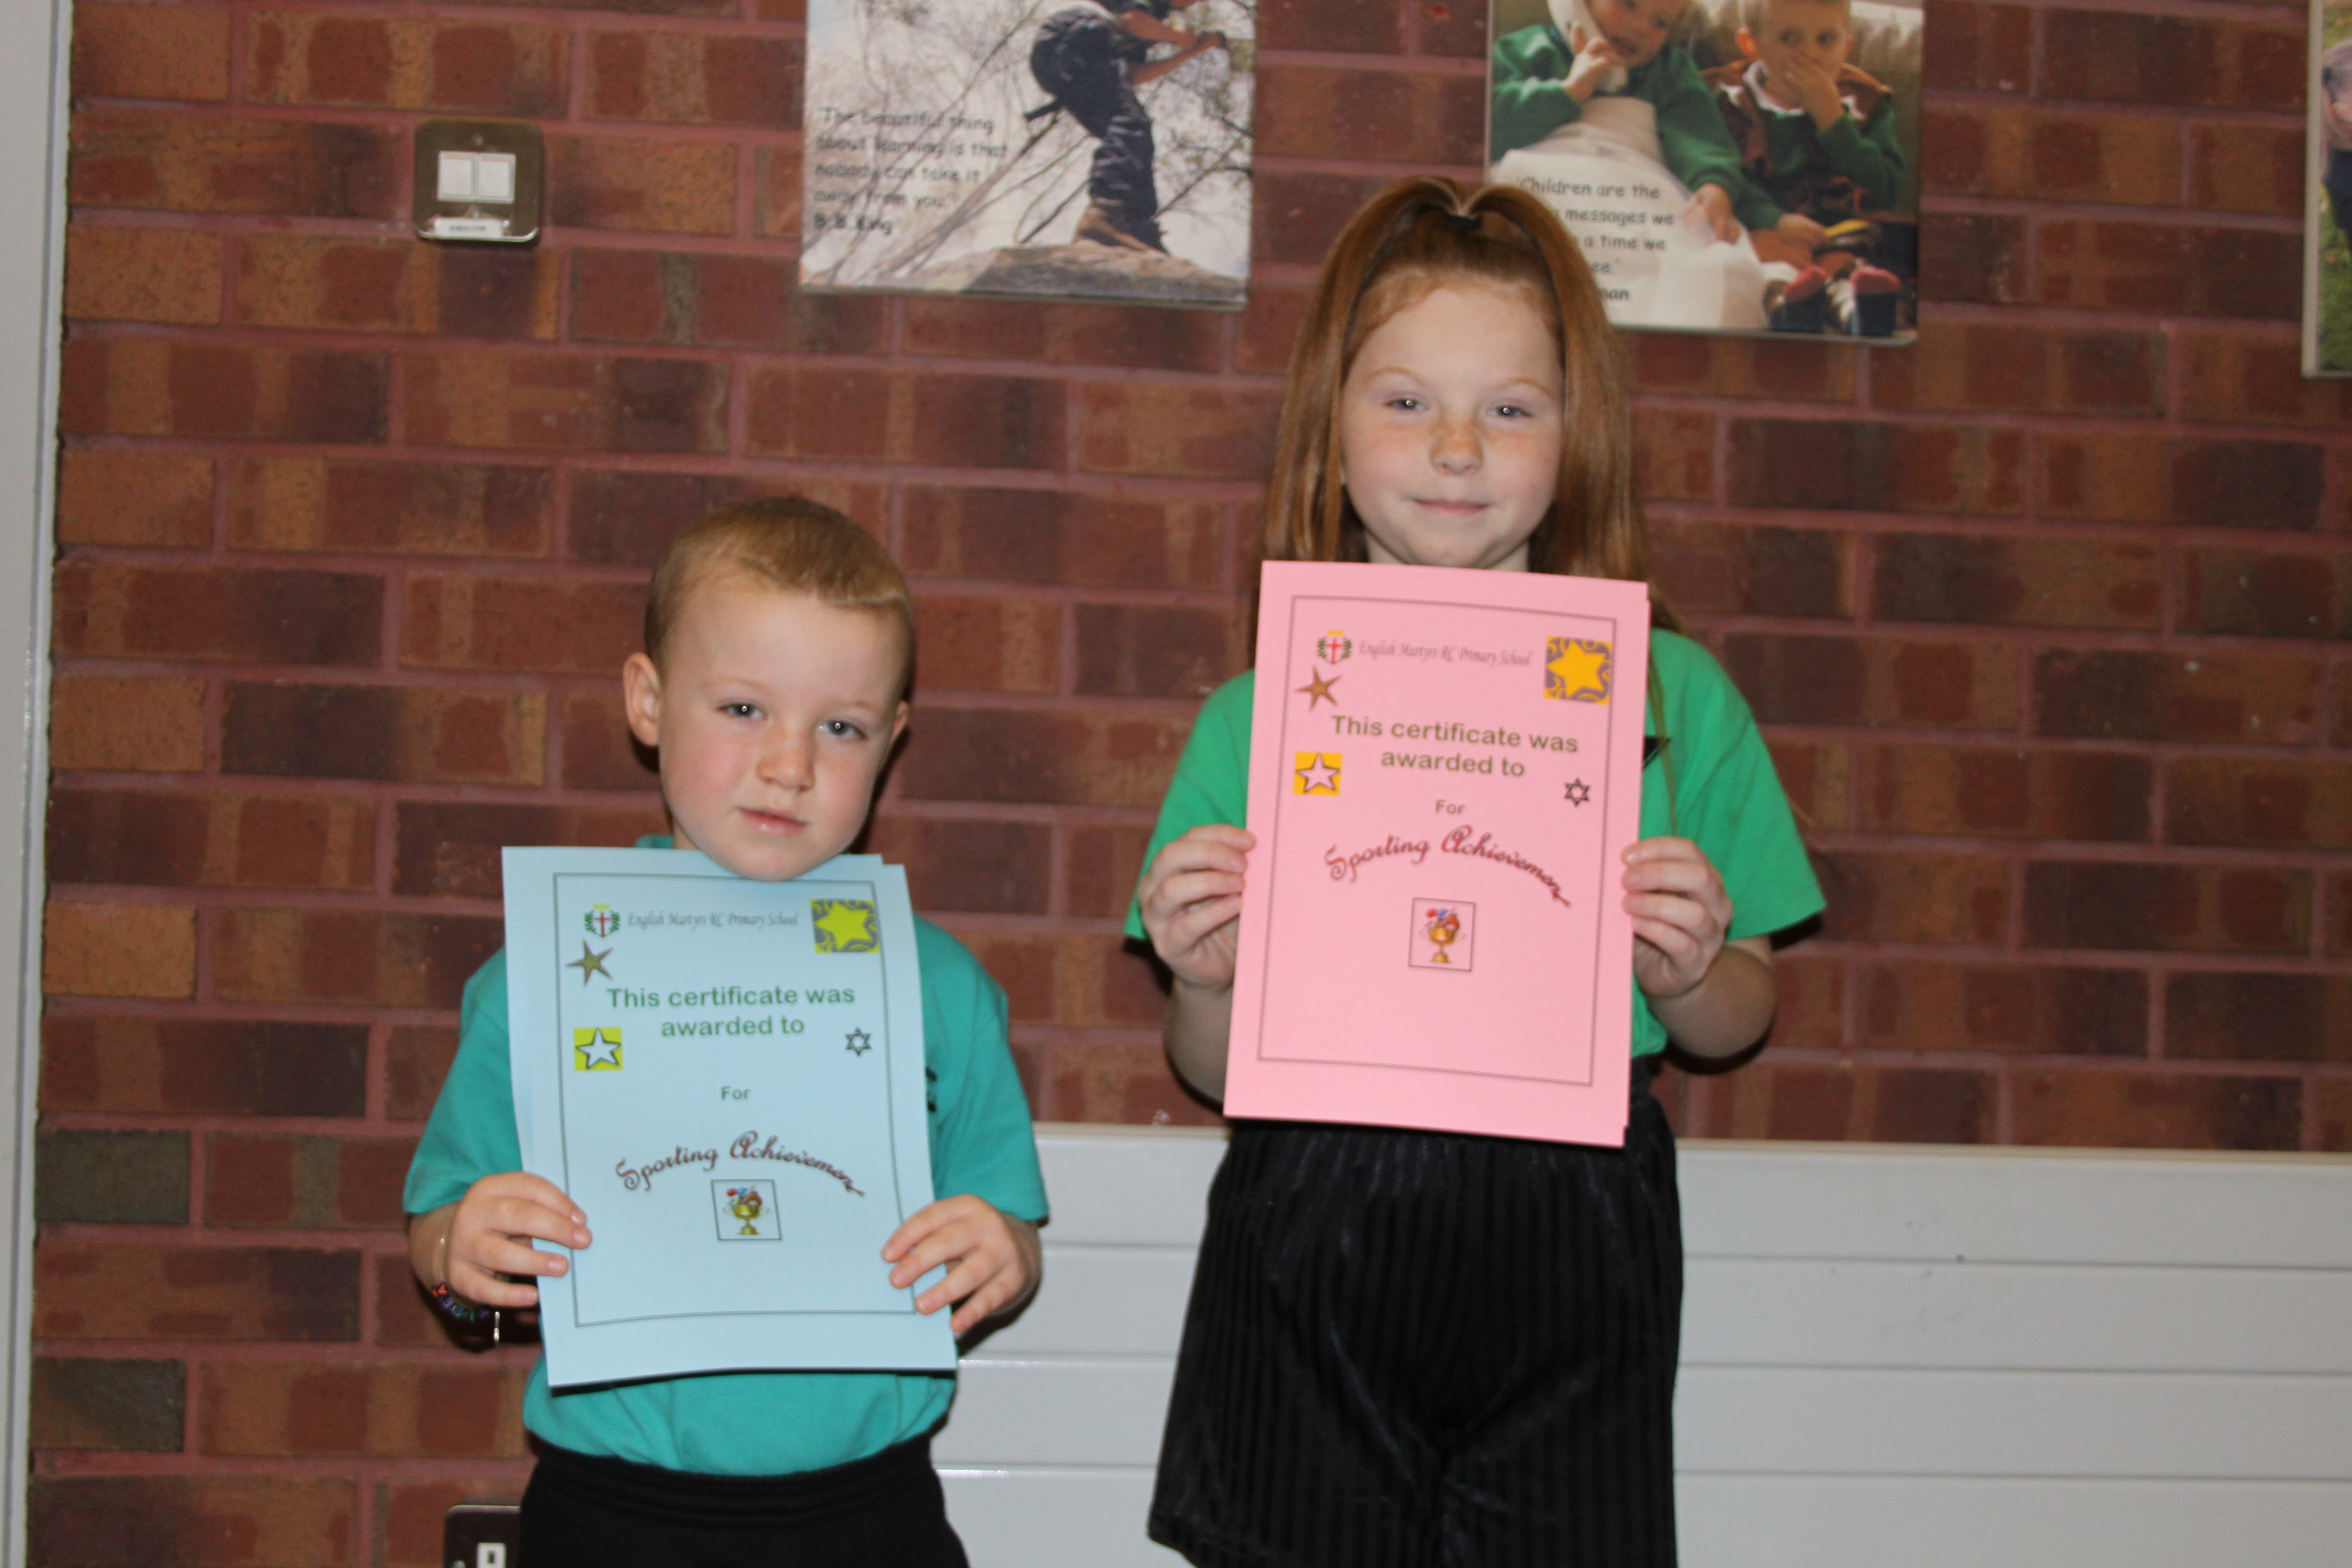 Sports Star of the Week 30.11.18